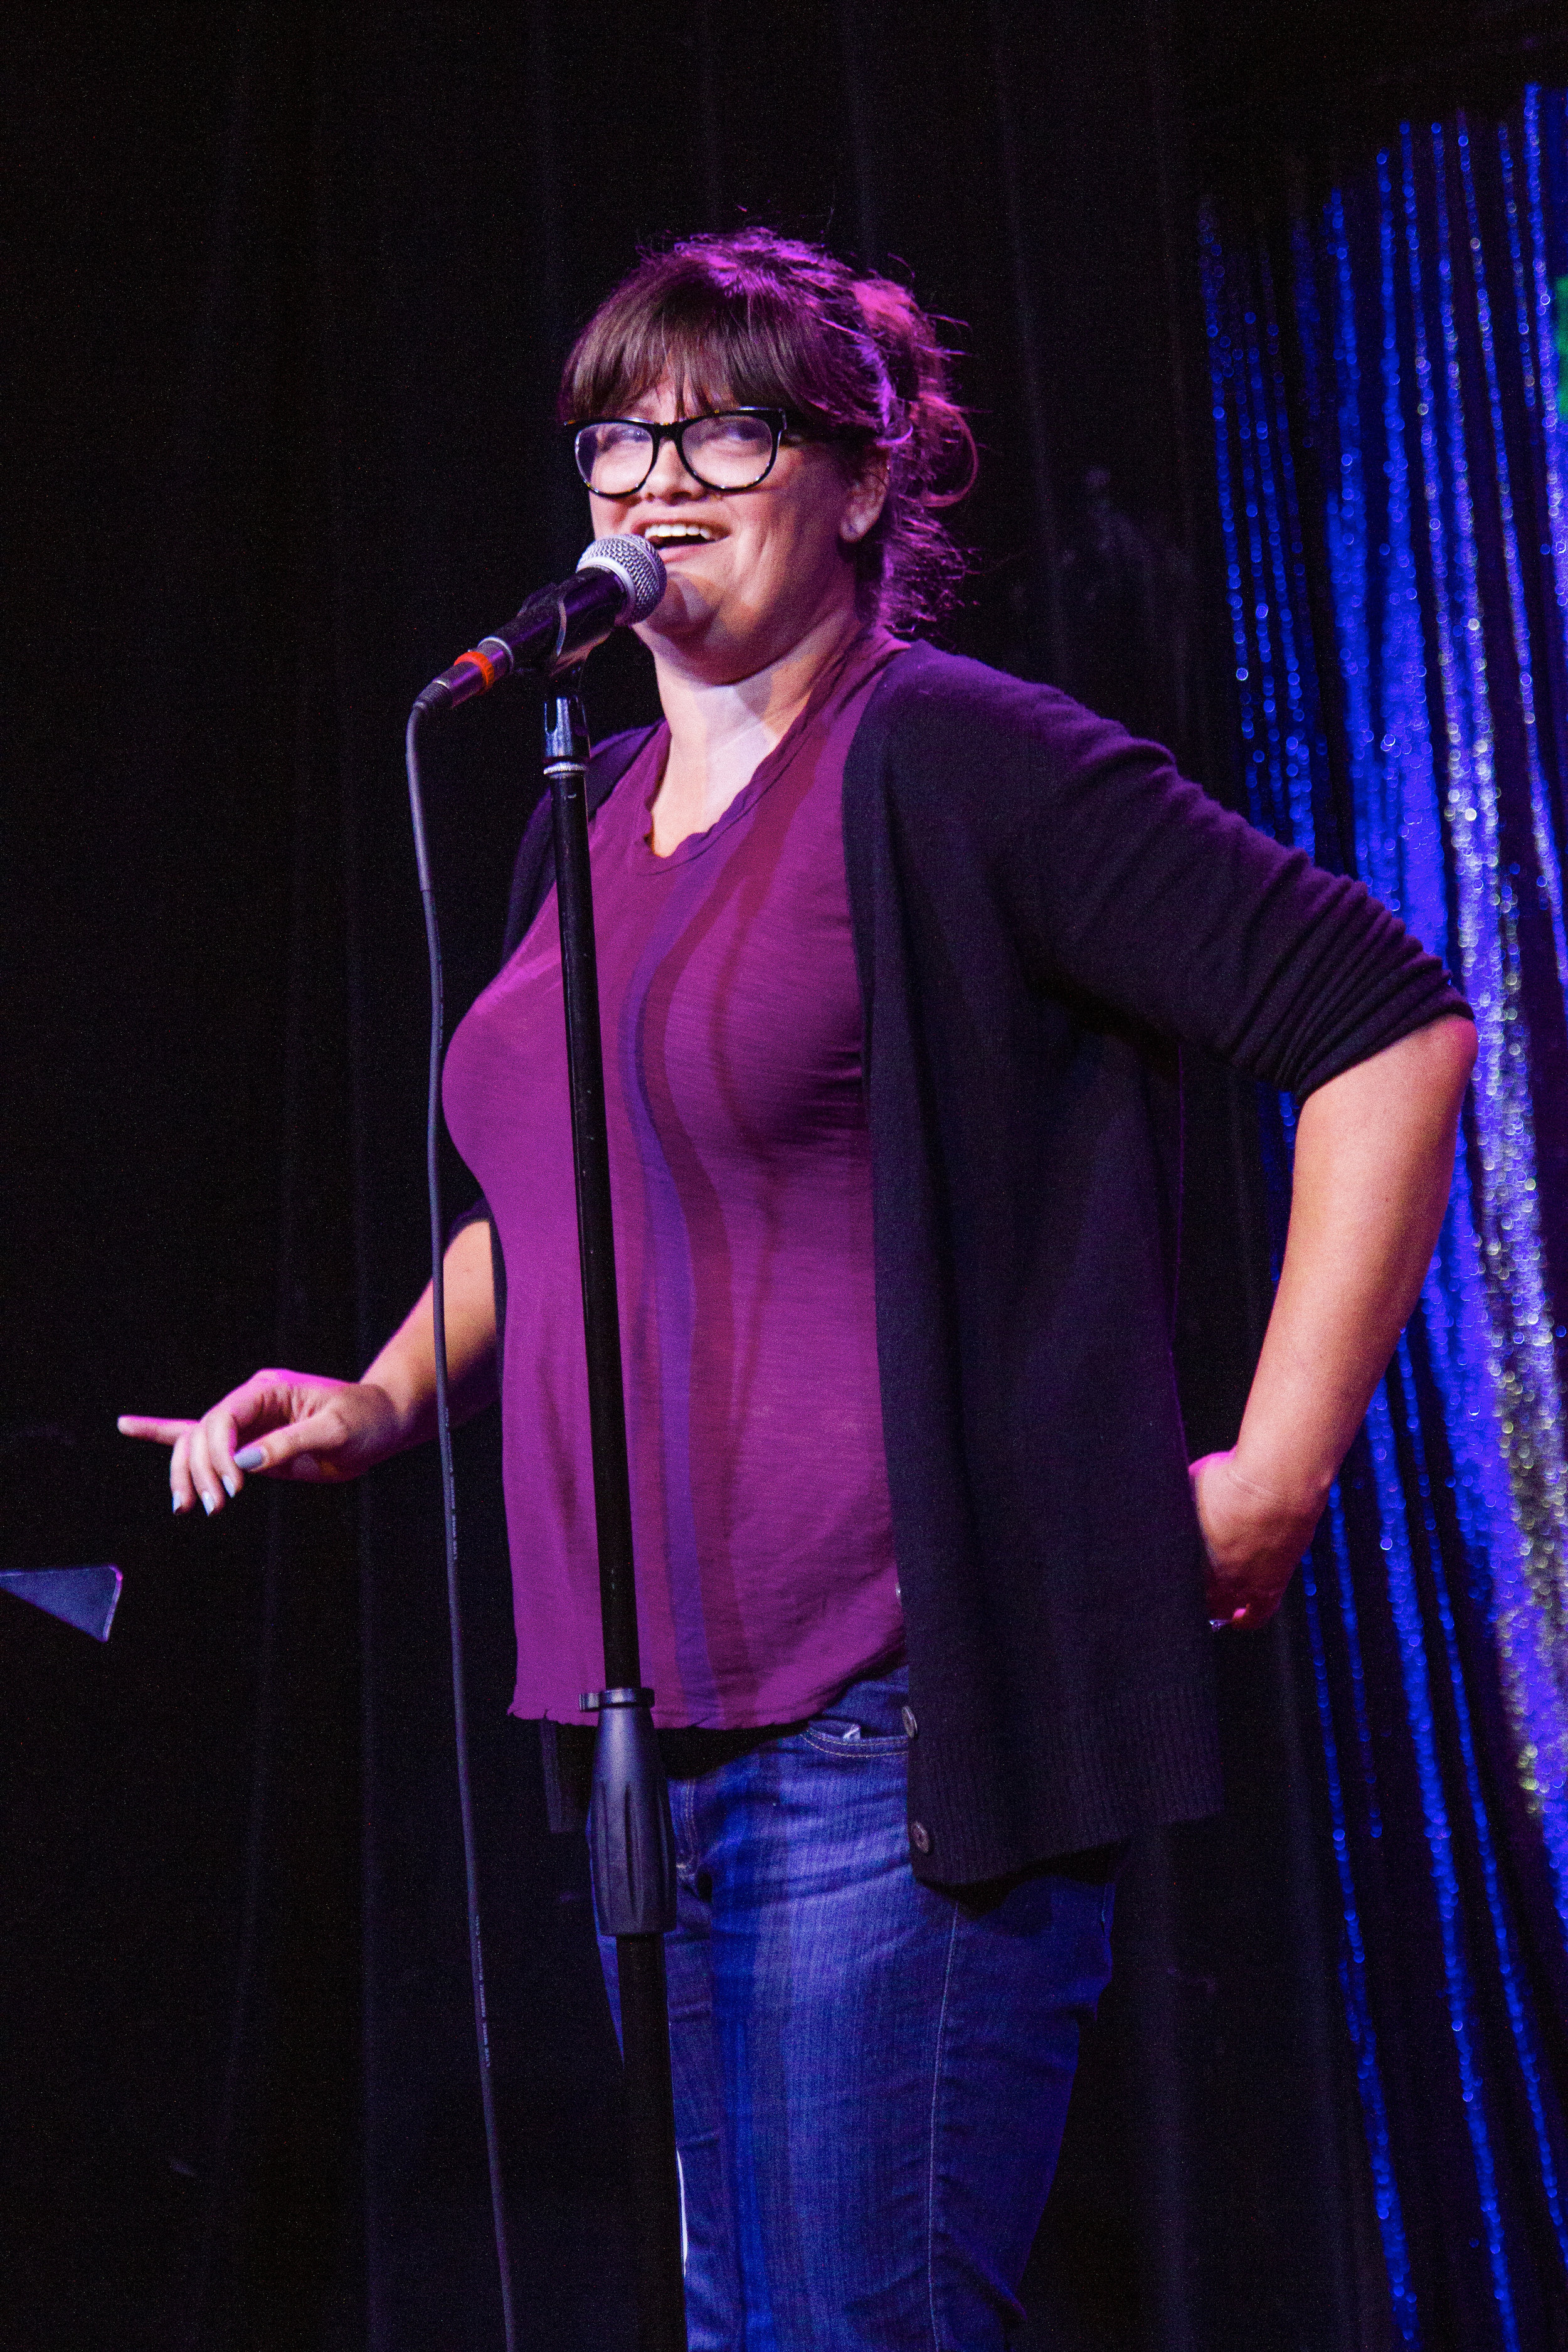 Joey Slamon shares her story at the Lyric Hyperion. Photo by Mari Provencher.